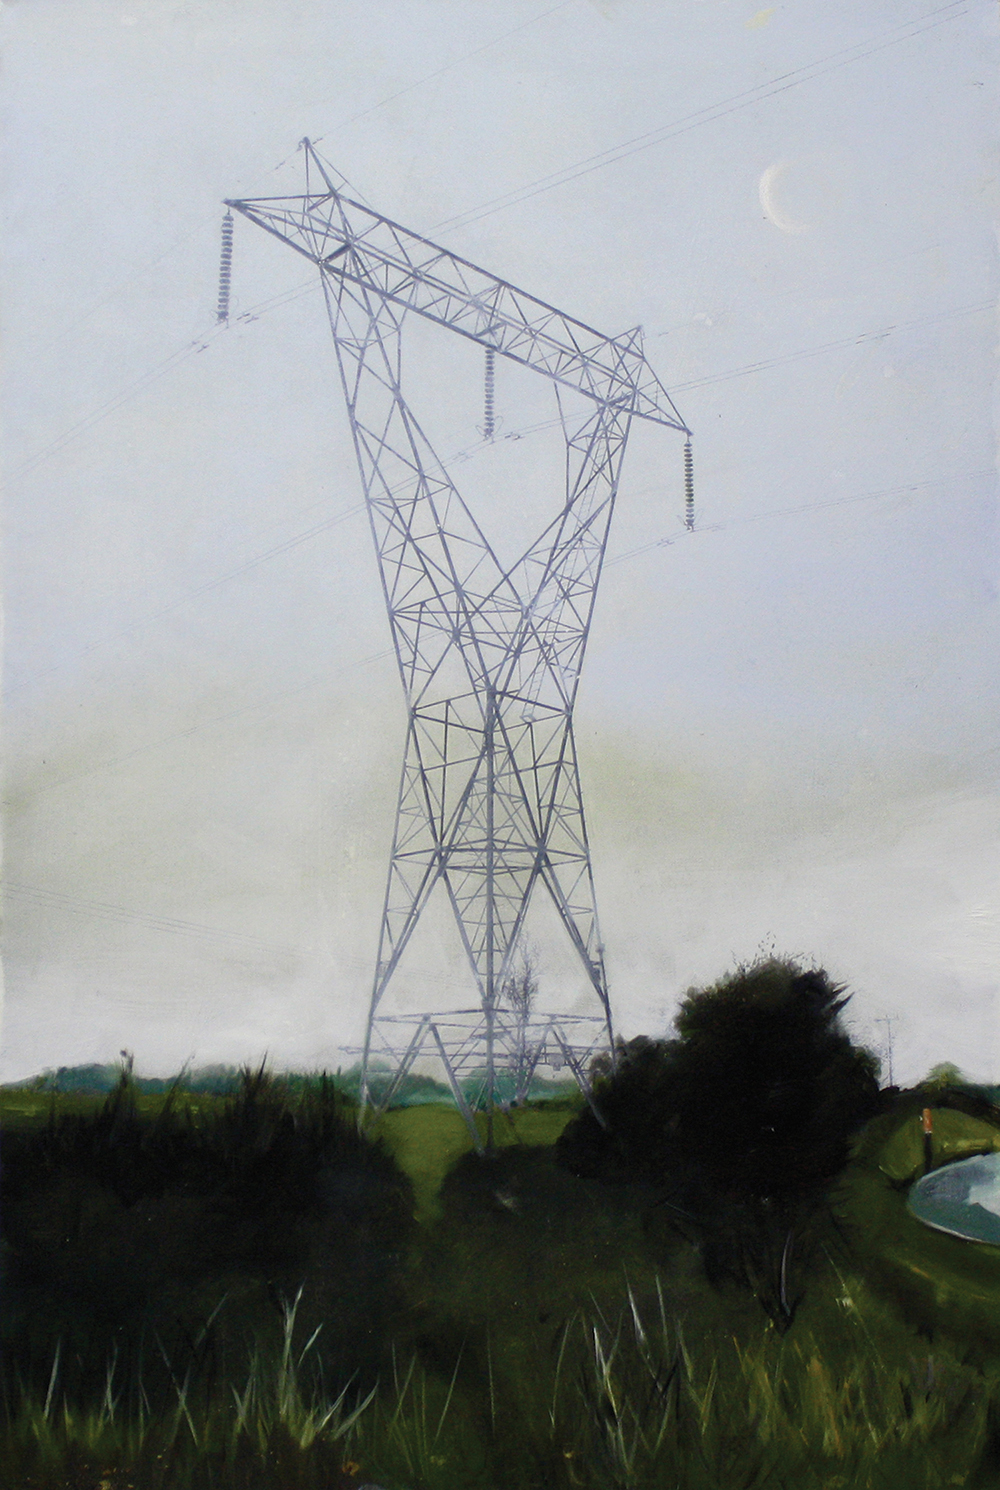 Edgeland 2   2012, oil on linen  76 x 50 cm